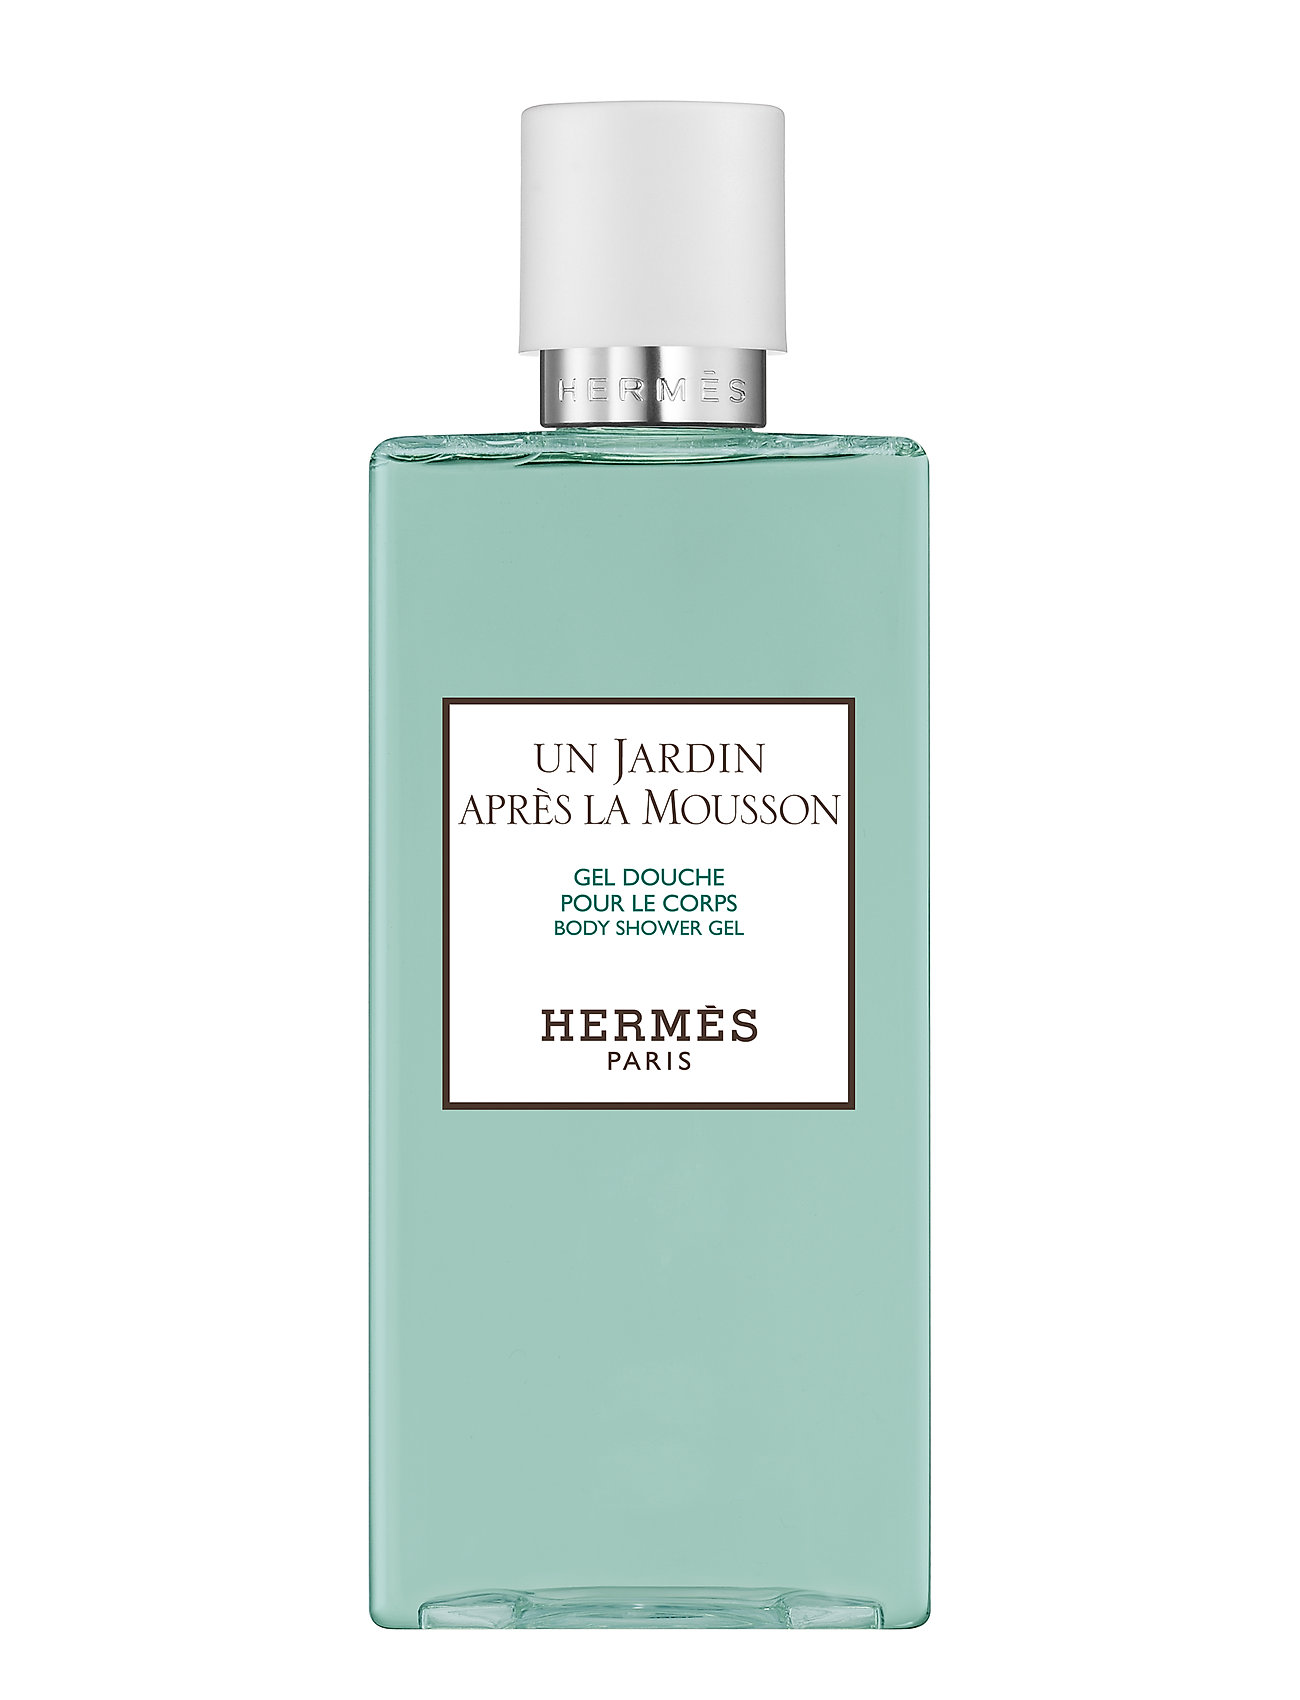 Image of Un Jardin AprèS La Mousson, Body Shower Gel Beauty WOMEN Skin Care Body Shower Gel Nude HERMÈS (3189527853)